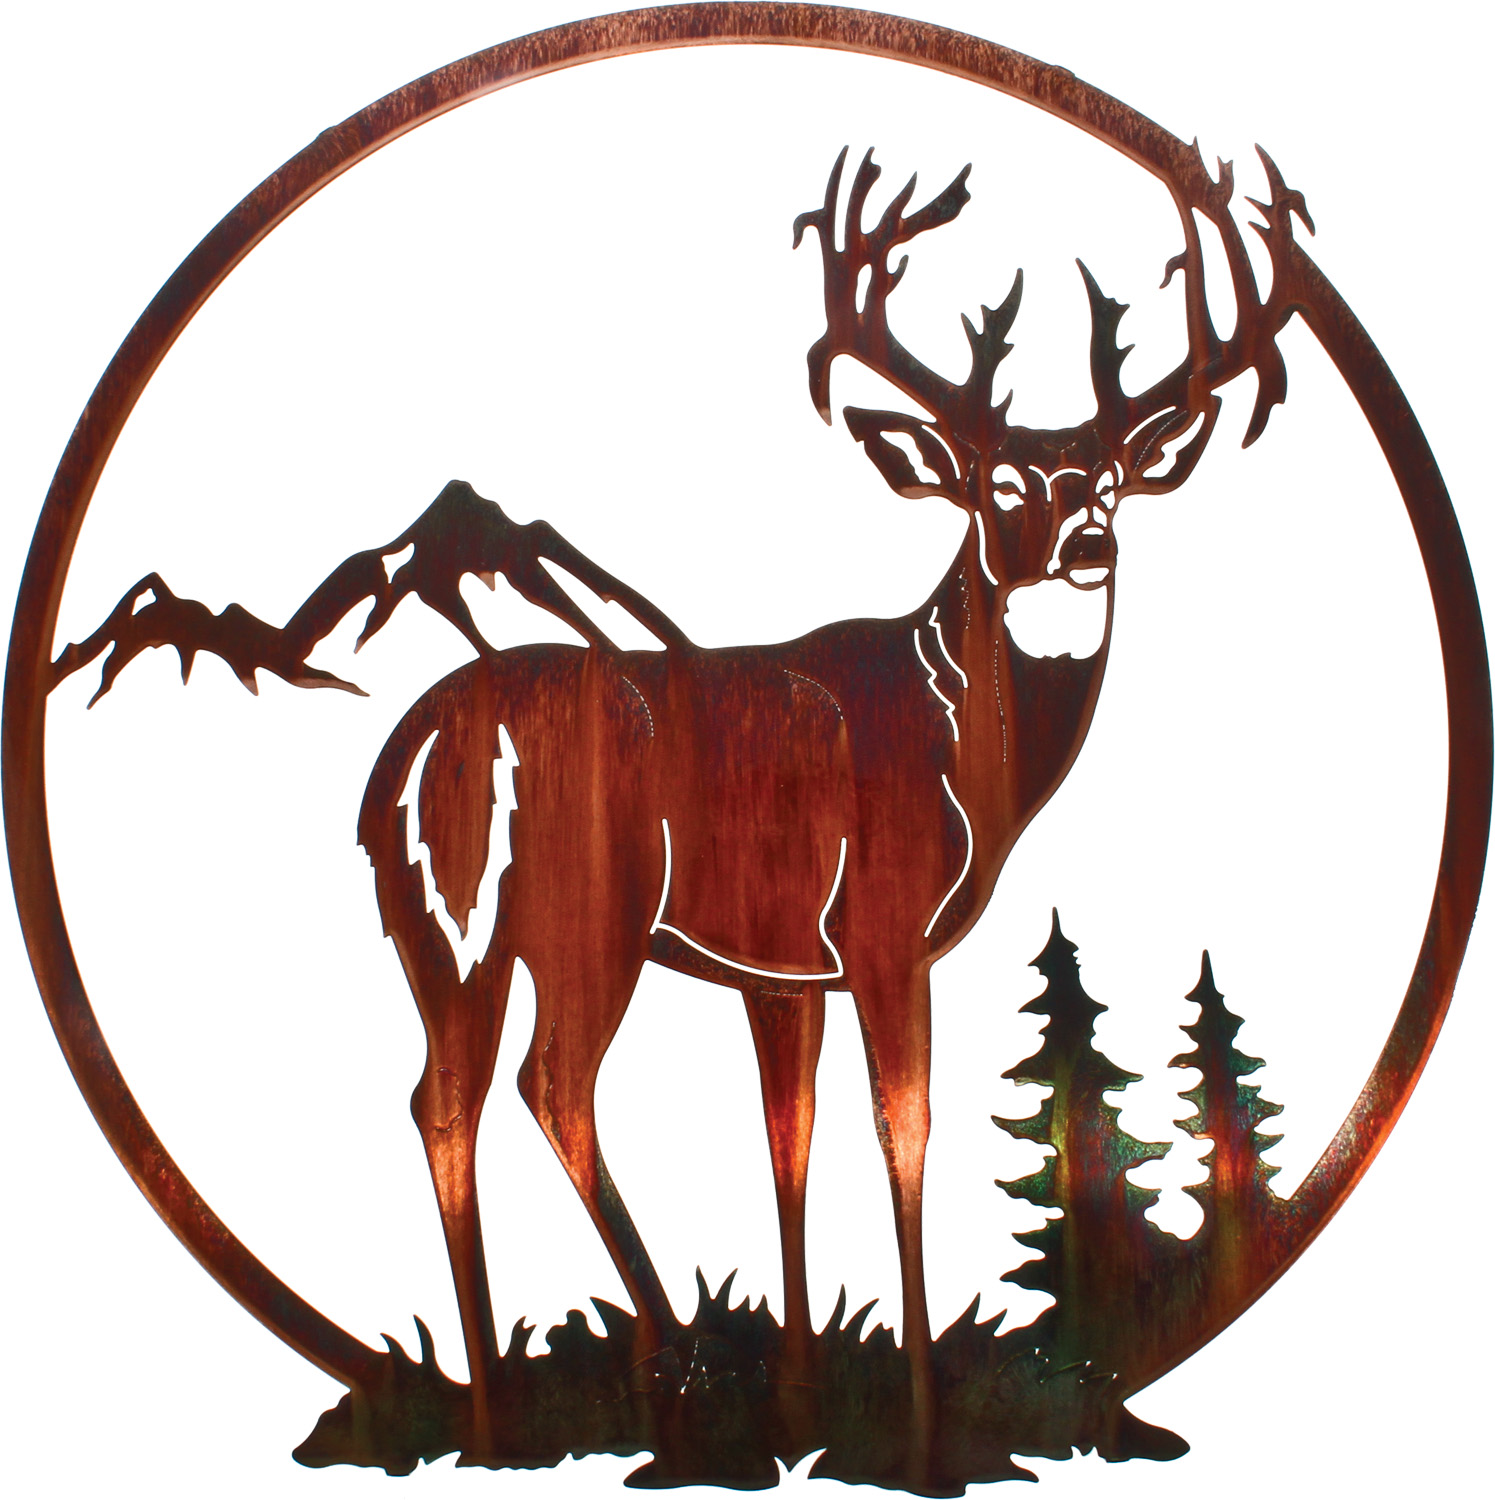 Wall Art Of Deer : Deer metal wall art hangings hanging bucks of